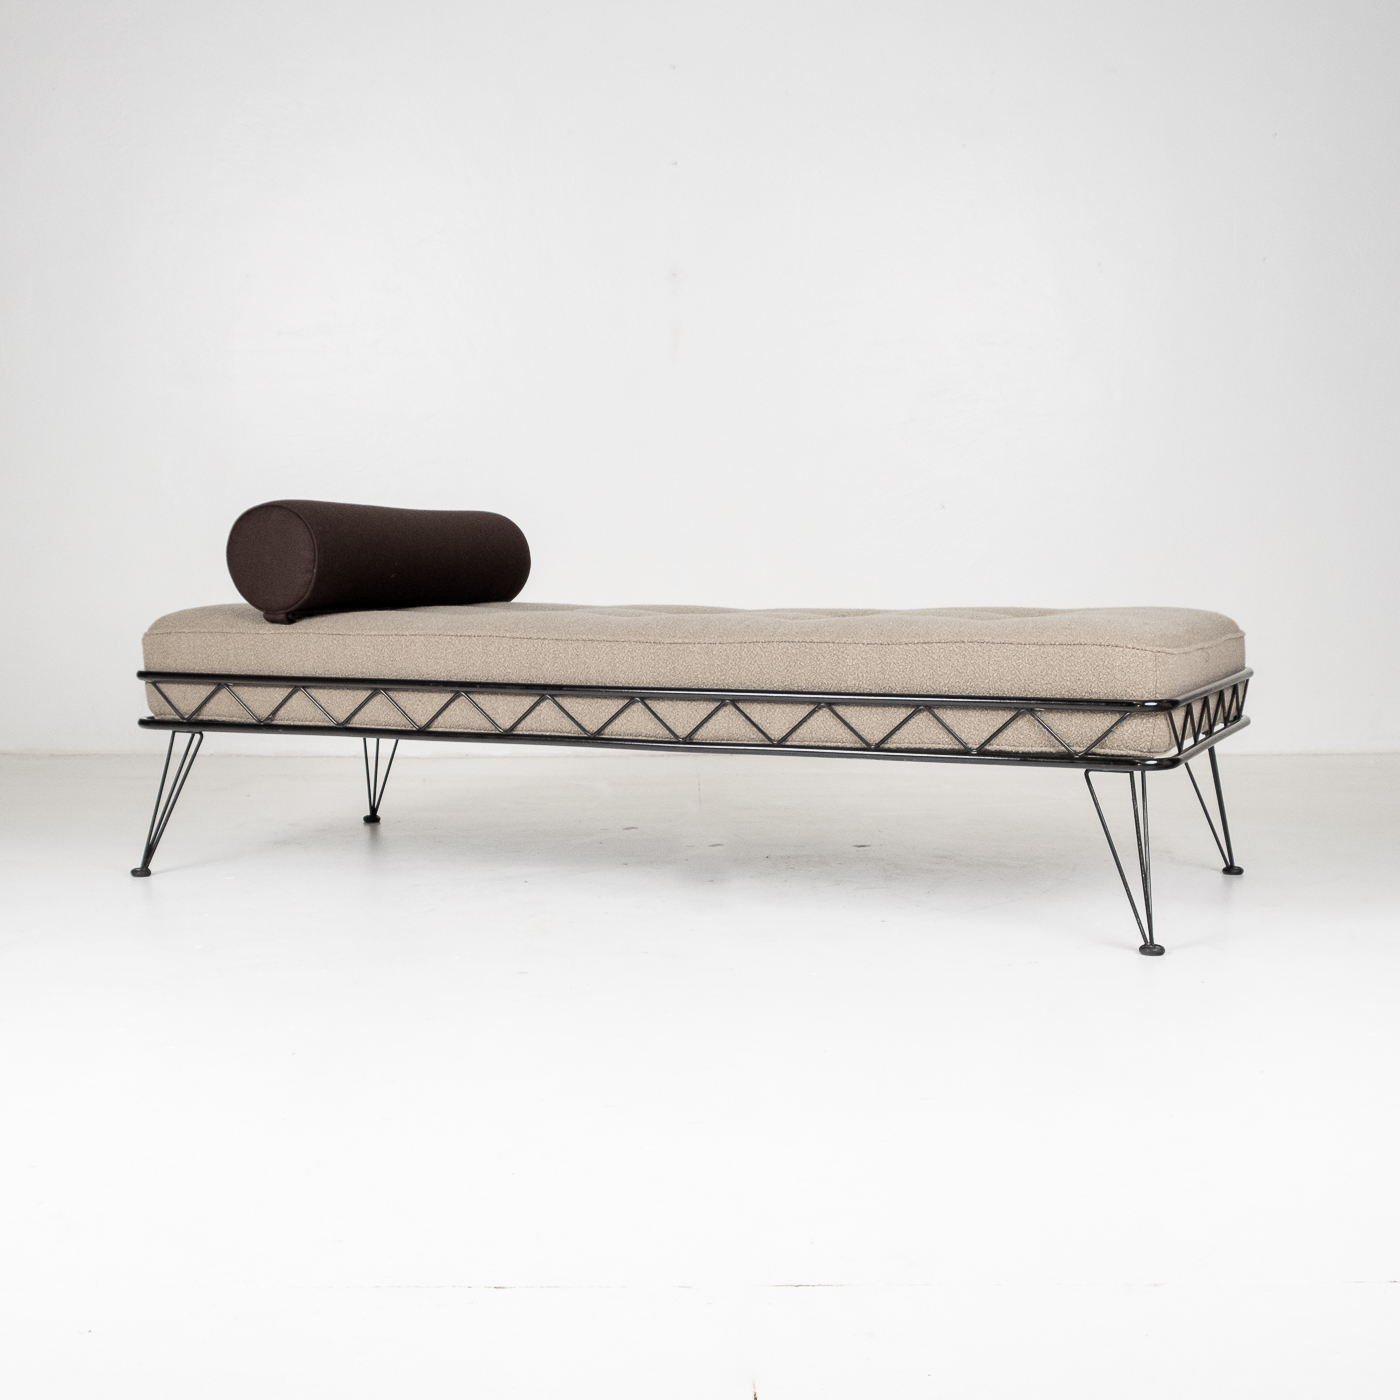 Arielle Daybed By Wim Rietveld For Auping With Black Frame And New Instyle Boucle Upholstery, 1956, The Netherlands 49